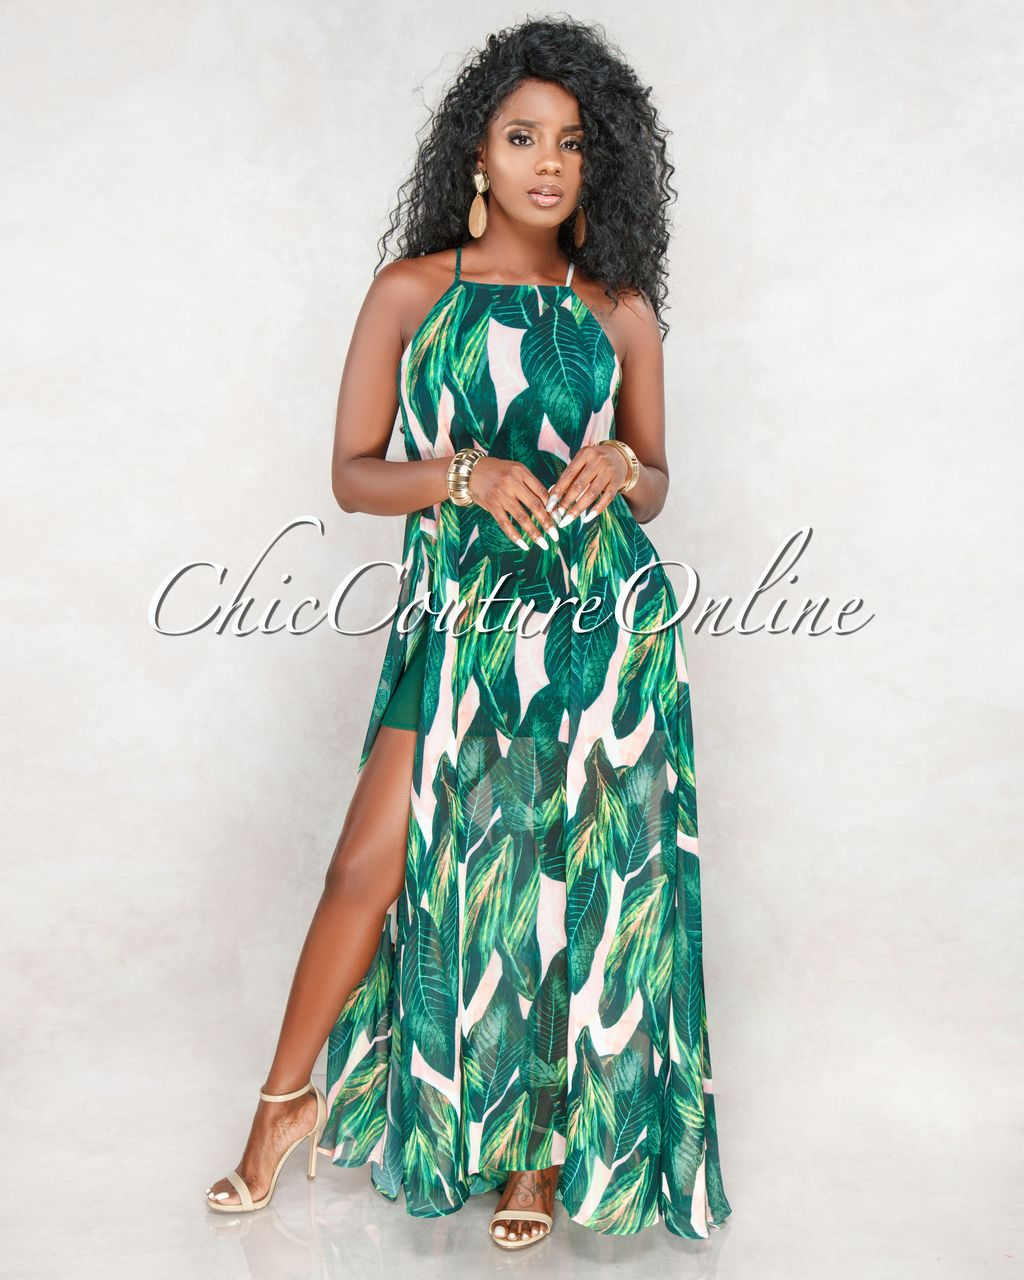 6e9082cceb88 Chic Couture Online - Privy Green Pink Leaf Print Sides Slits Maxi Dress